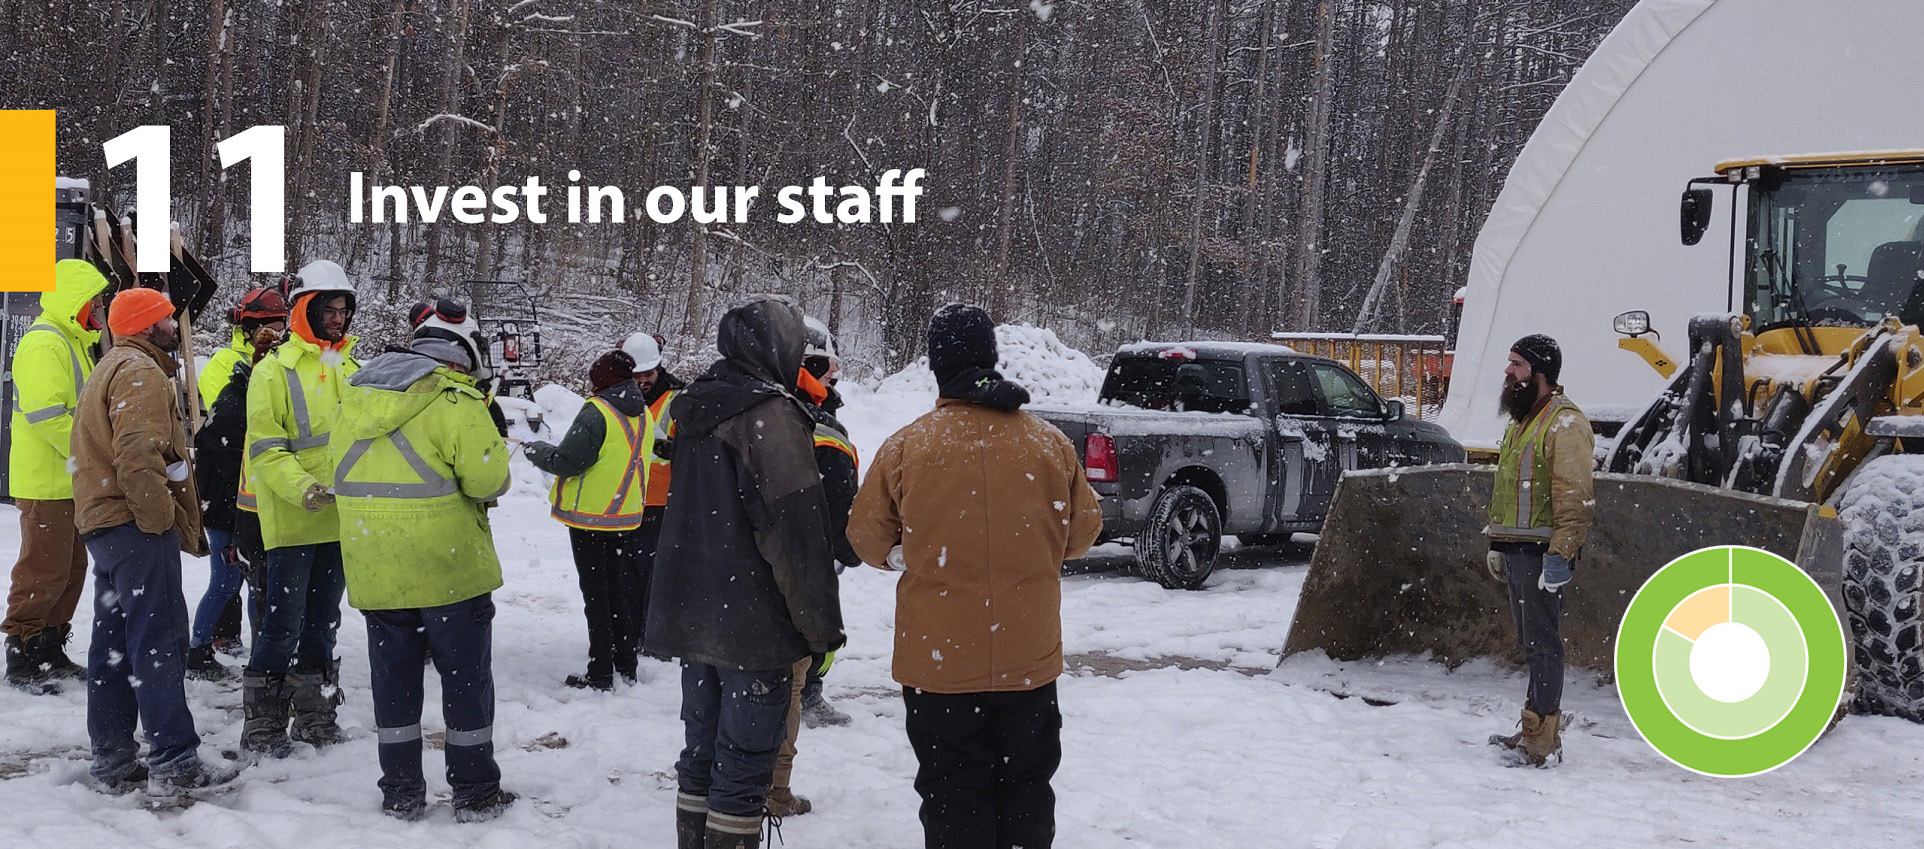 TRCA Strategic Goal 11 - Invest in Our Staff